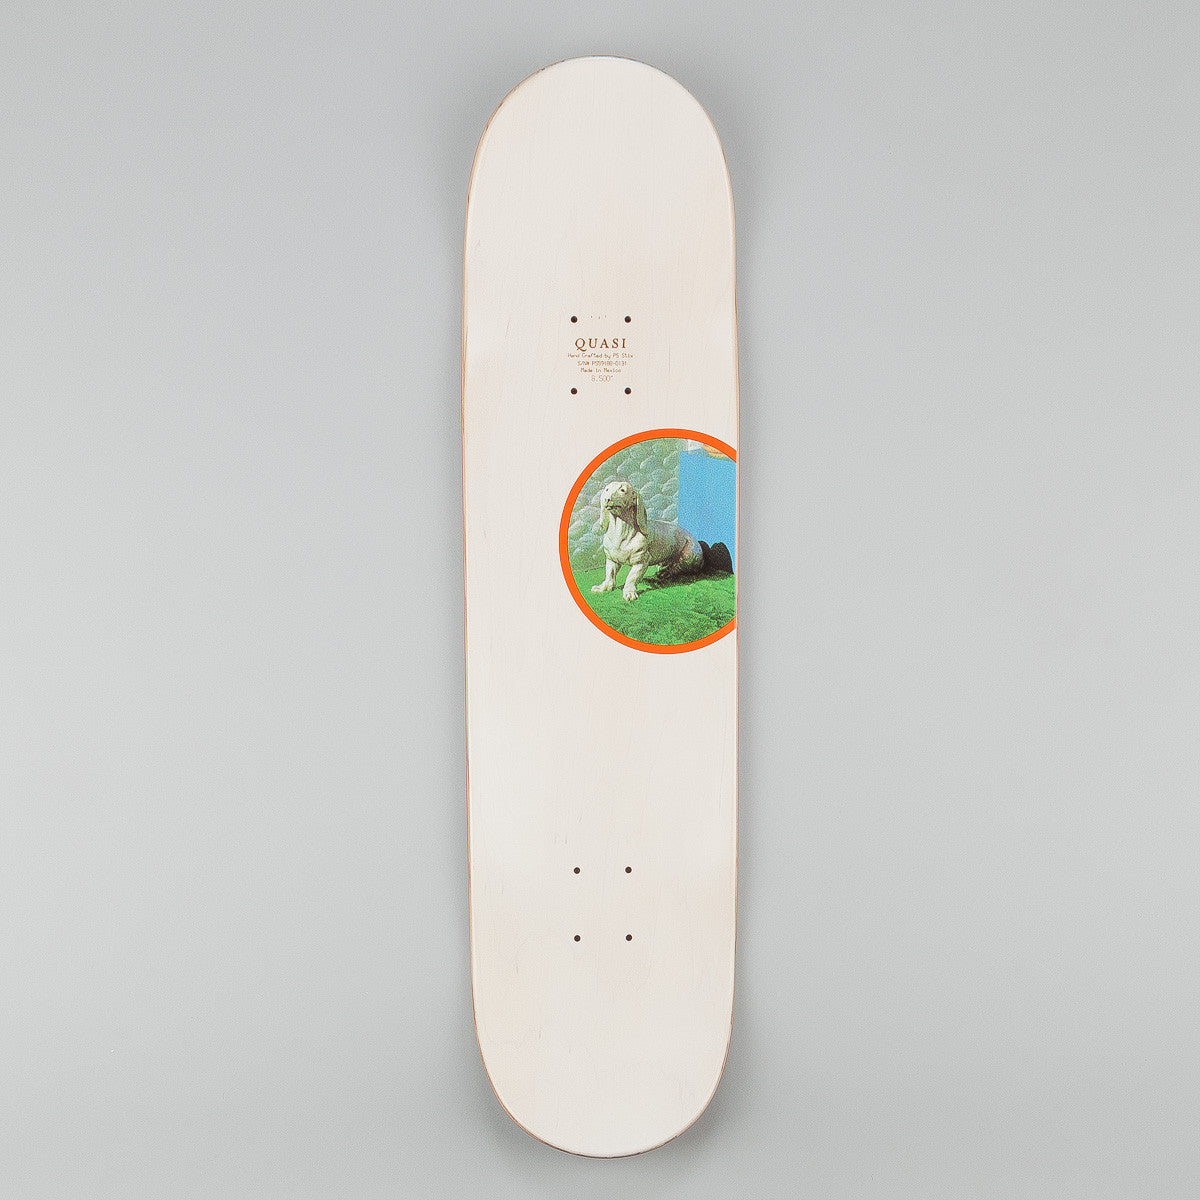 Quasi Skateboards 1972 White Wash Deck - Natural - 8.5""